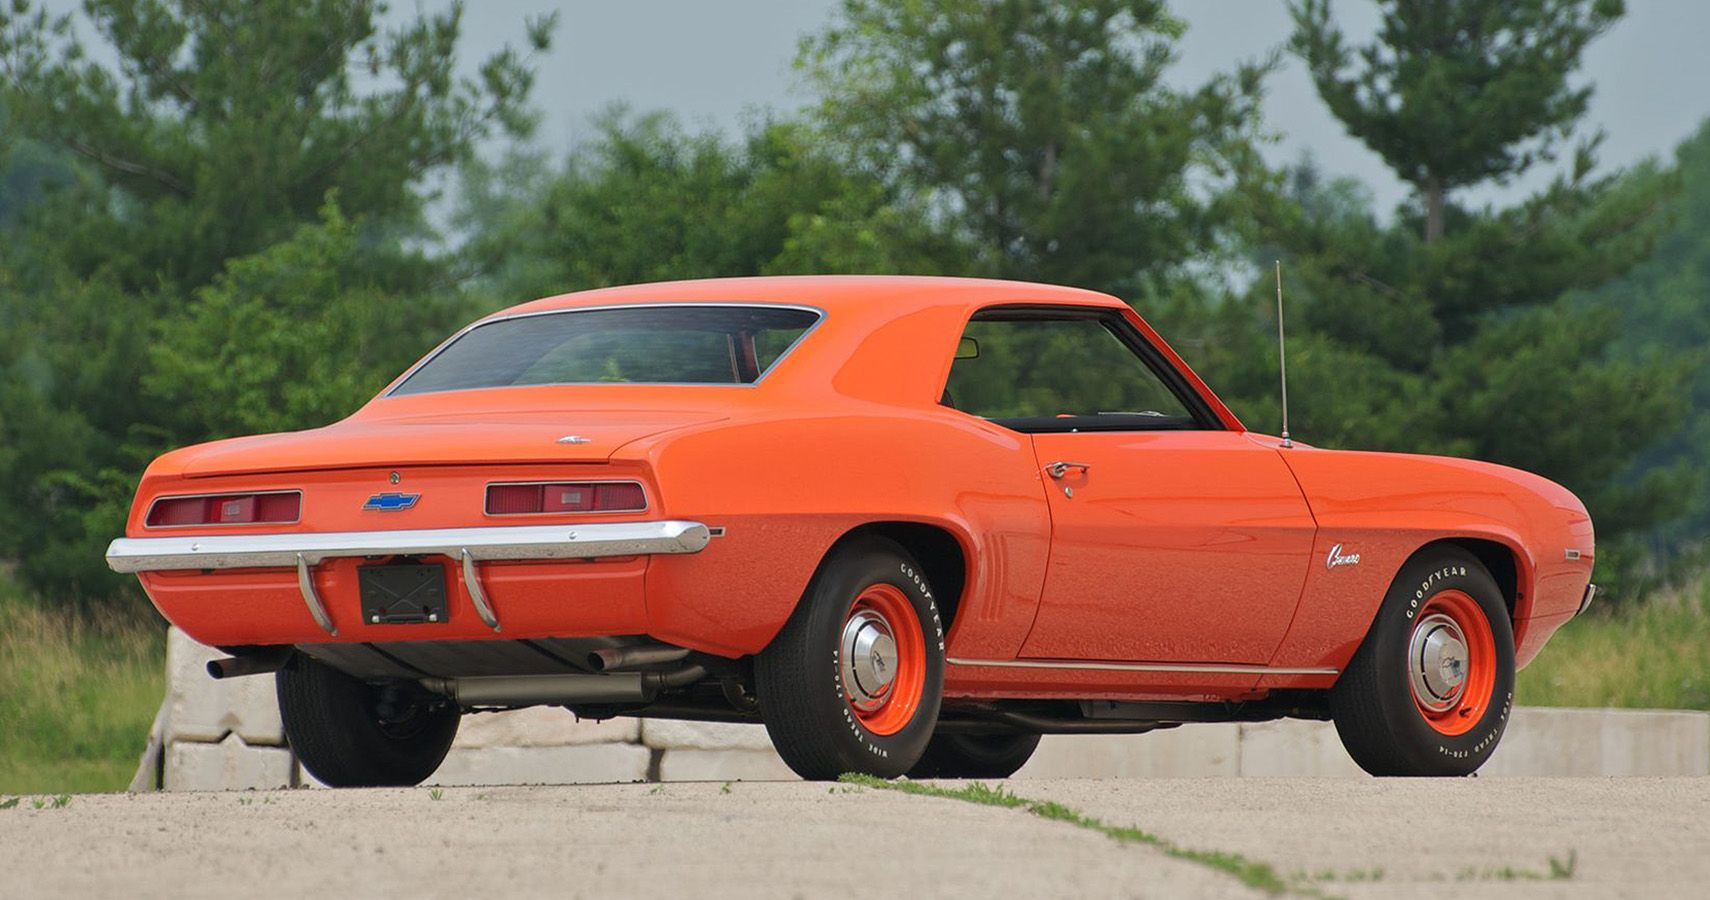 These Classic Muscle Cars Are Too Cool To Modify | HotCars